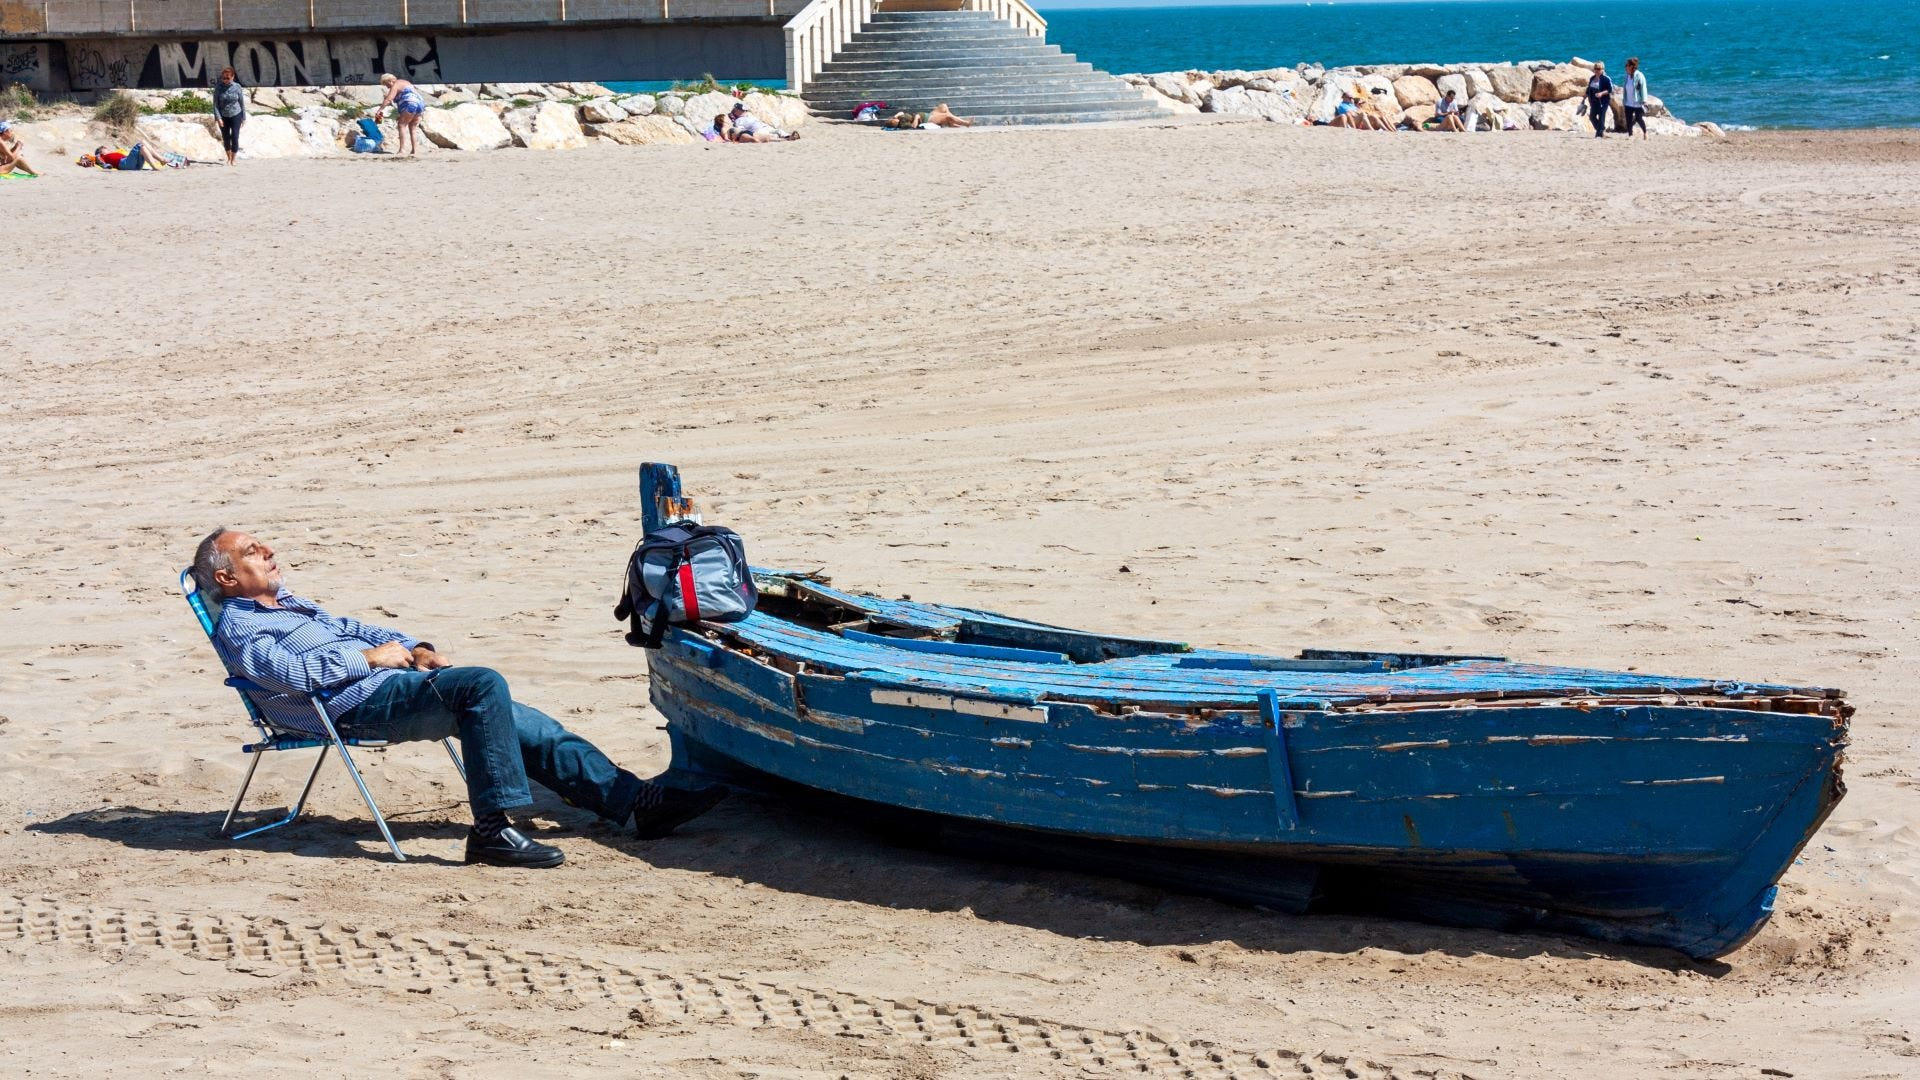 A man taking a siesta on a beach in Spain next to a boat.